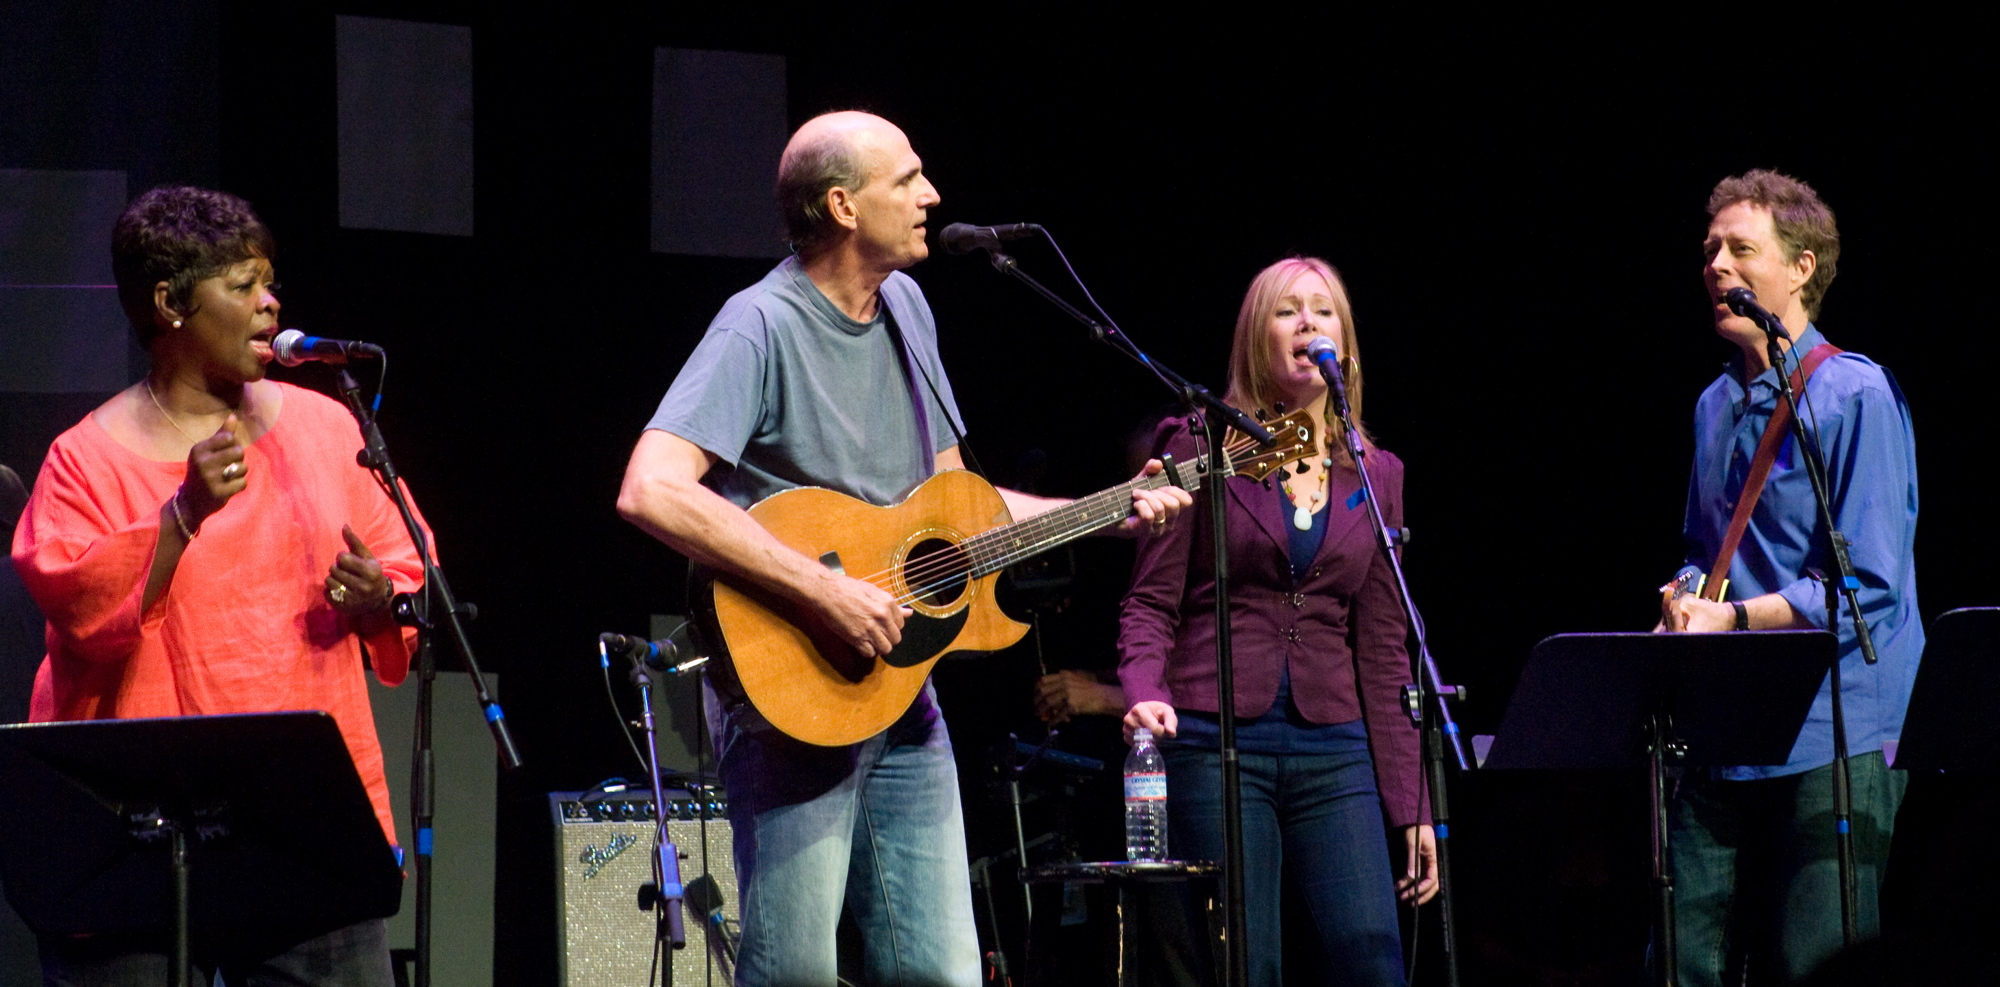 File:Etown james and irma jpg - Wikimedia Commons